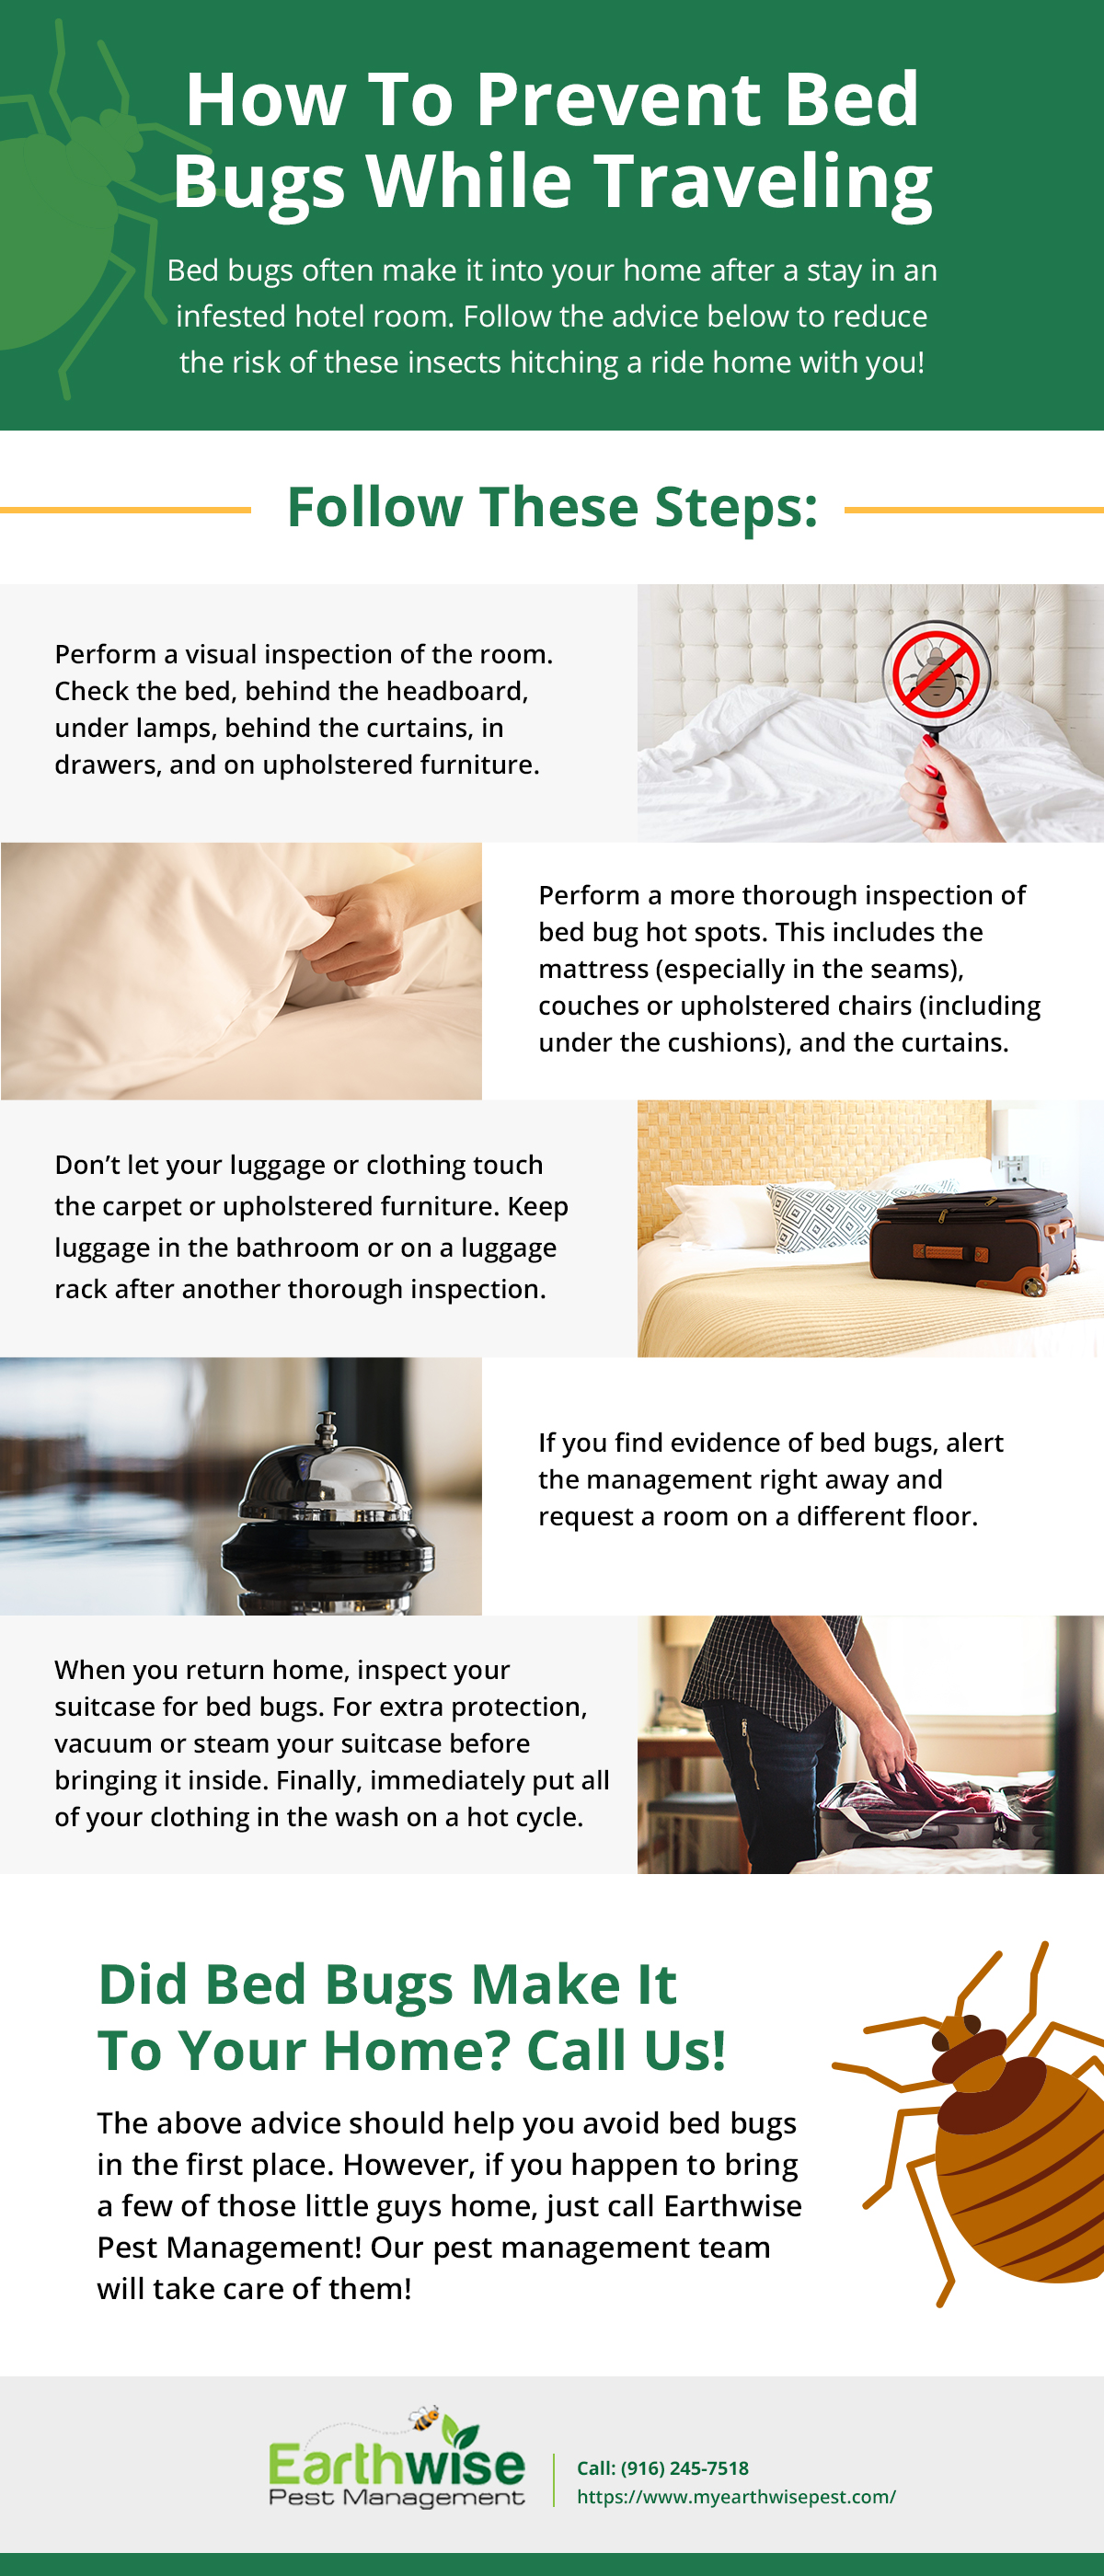 How To Prevent Bed Bugs While Traveling